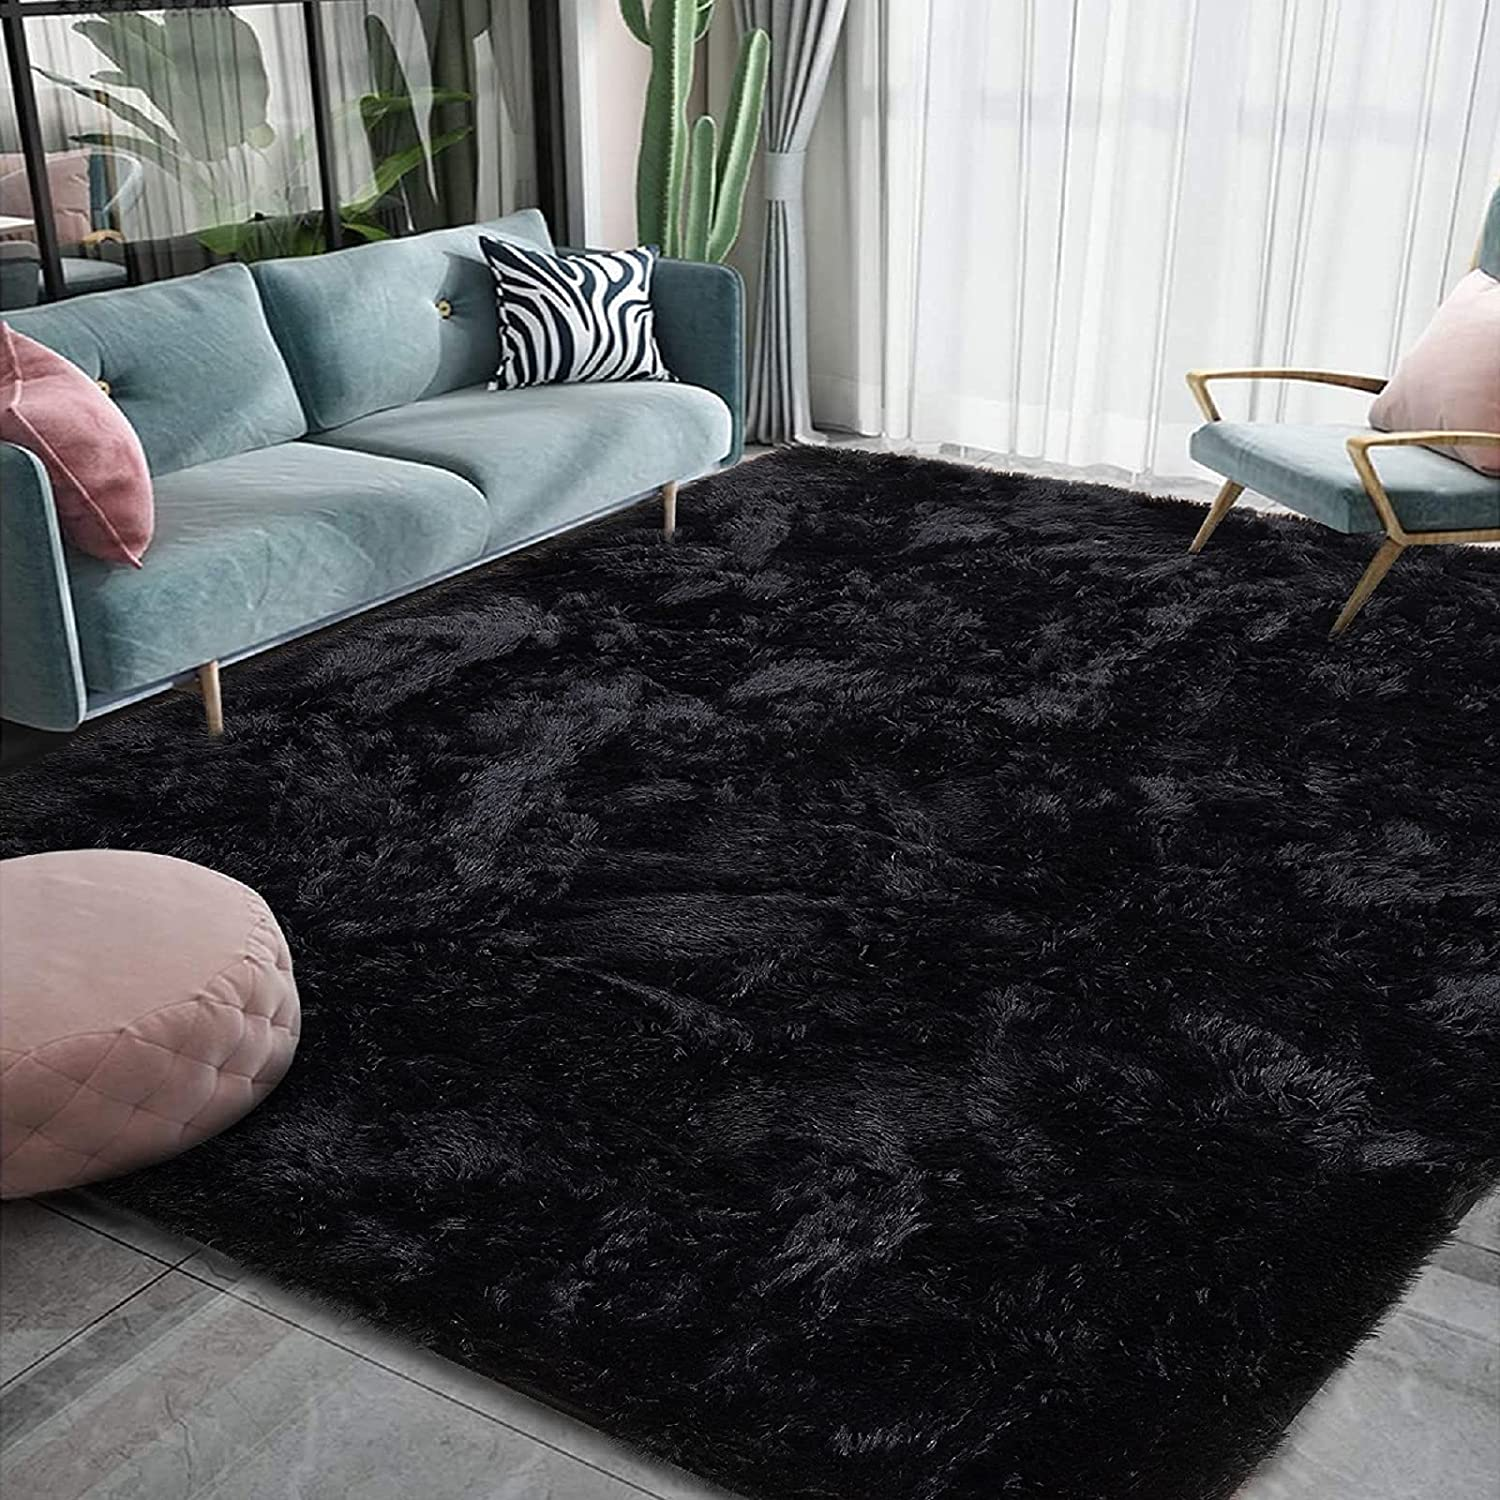 Beauty products Homore Luxury Fluffy Area Rug Modern Genuine Rugs Bedroom Shag Livin for